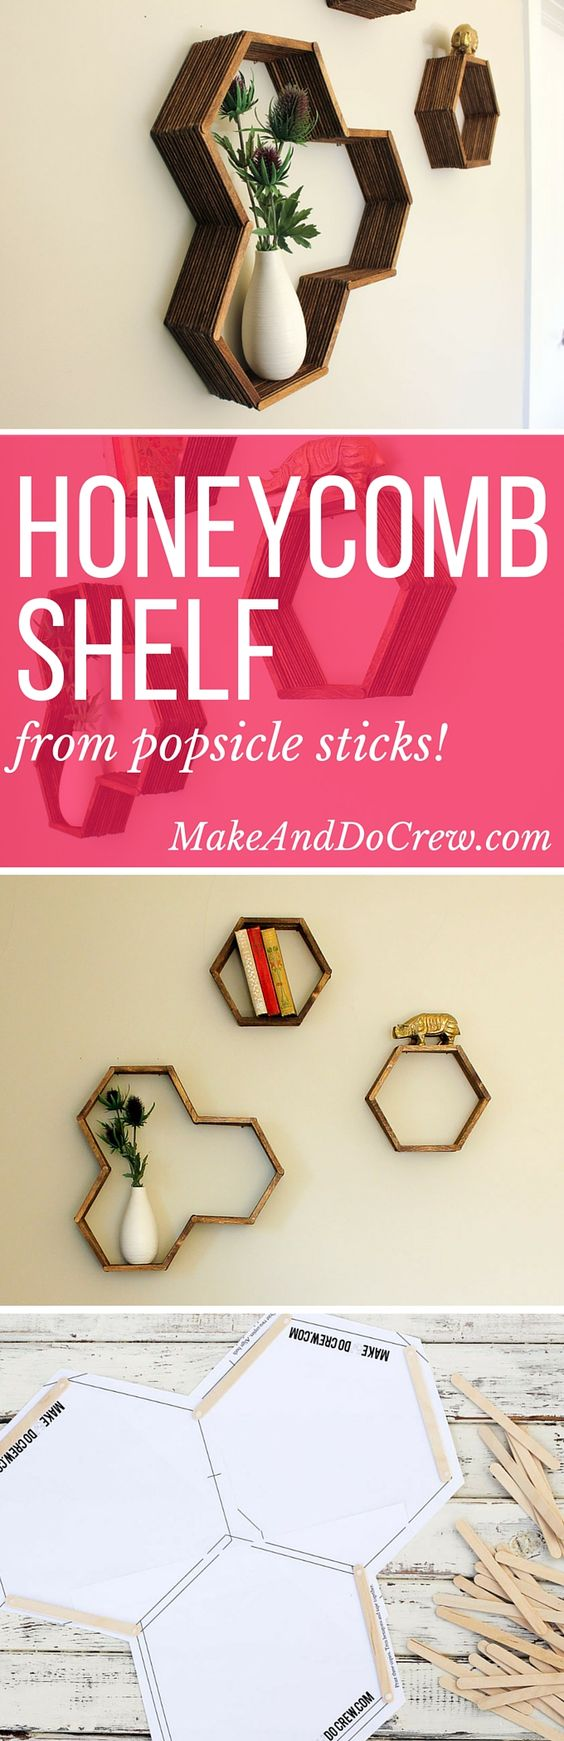 Make awesome mid century modern honeycomb shelves for less than $10 using popsicle sticks! These West Elm worthy hexagon shelves add warmth and dimension to any gallery wall and also look great on their own. Click for instructions and free downloadable template. | MakeAndDoCrew.com: